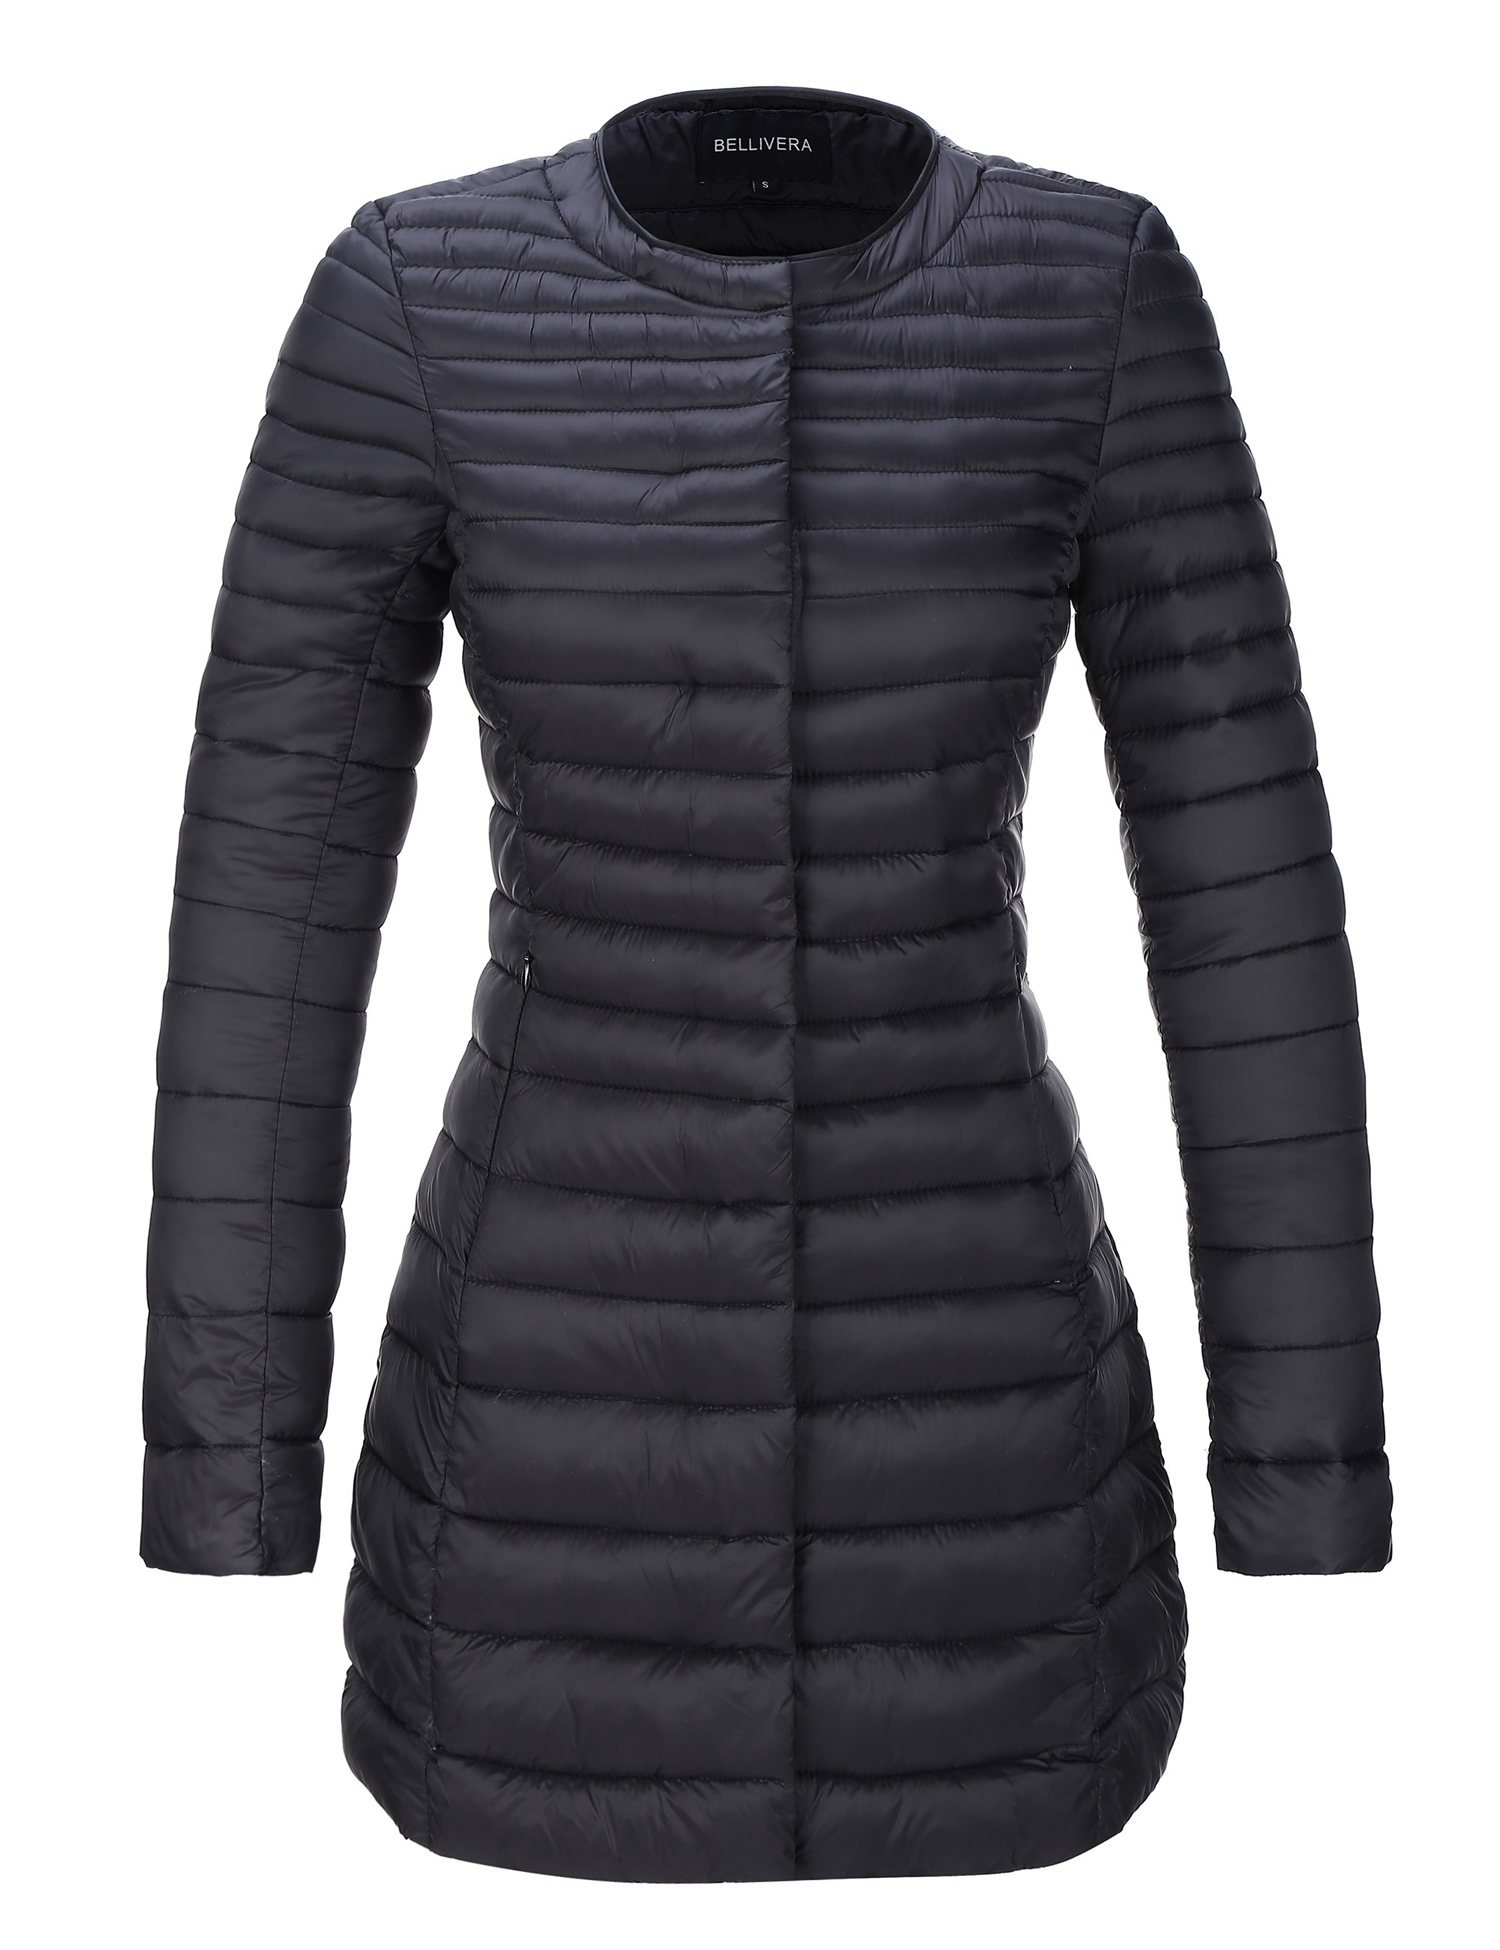 Bellivera Women's Quilted Lightweight Padding Jacket, Puffer Coat Cotton Filling Water Resistant for Fall and Winter by Bellivera